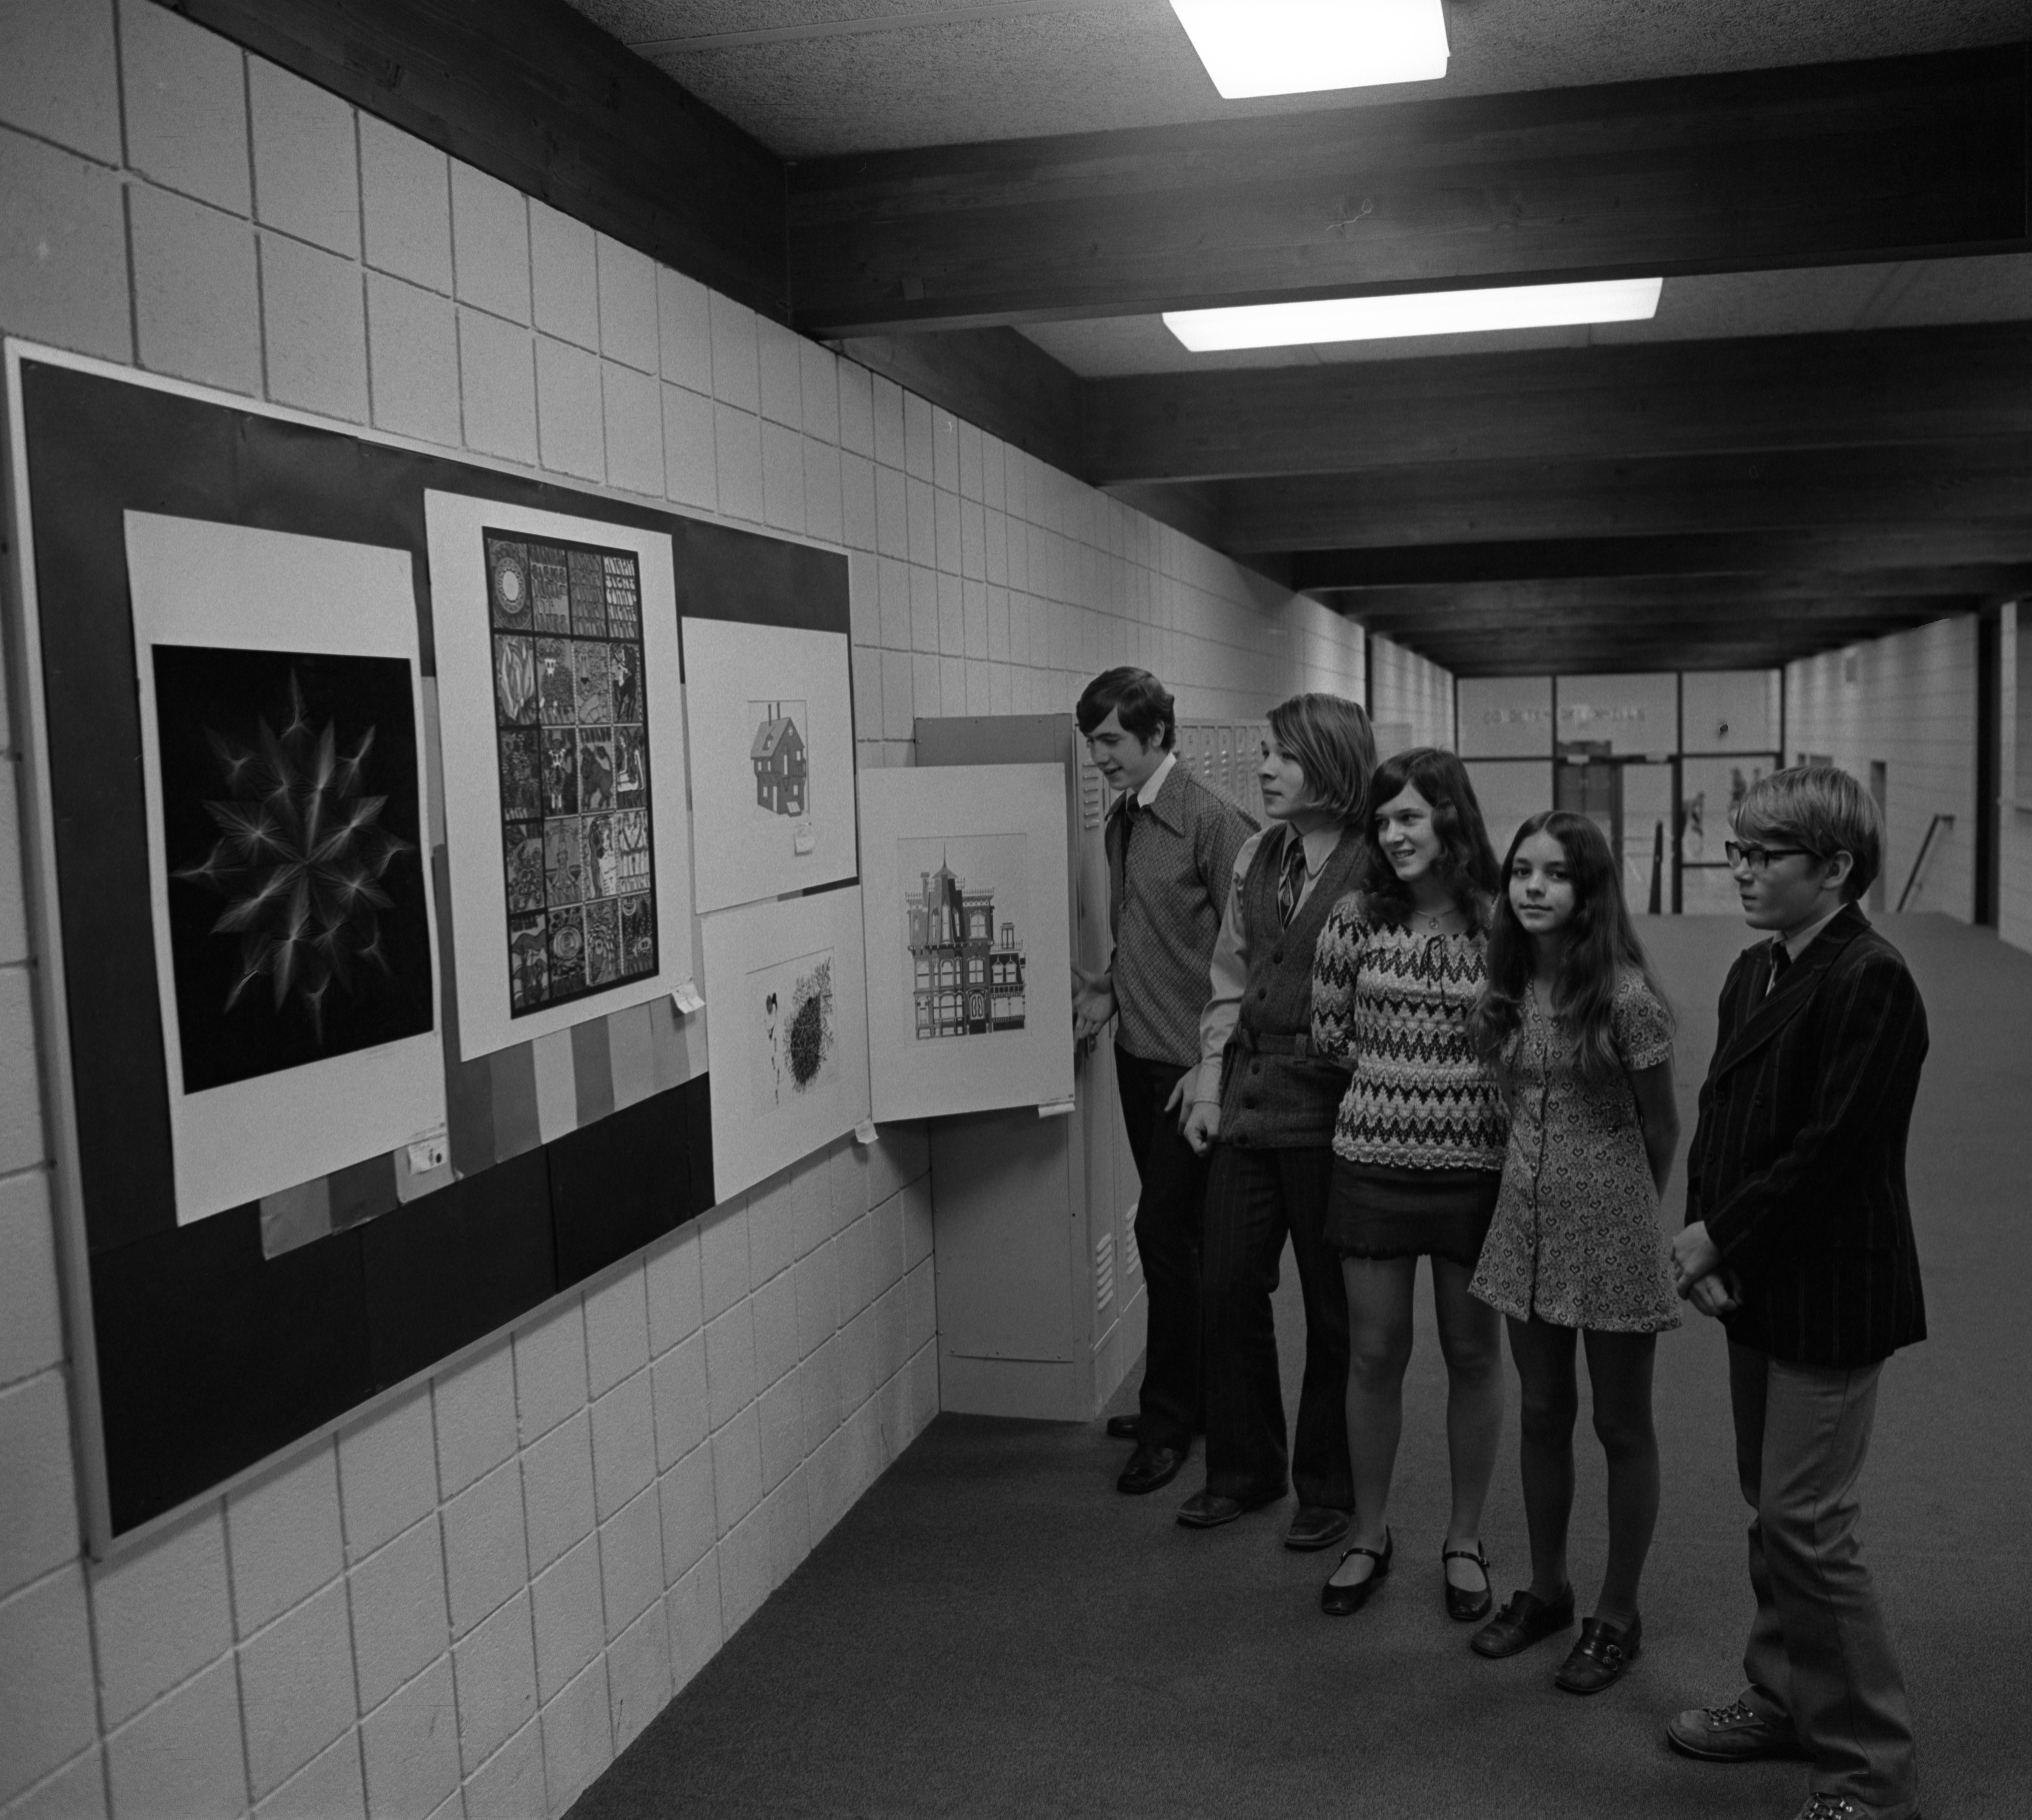 Greenhills Art Award Winners, March 26, 1972 image